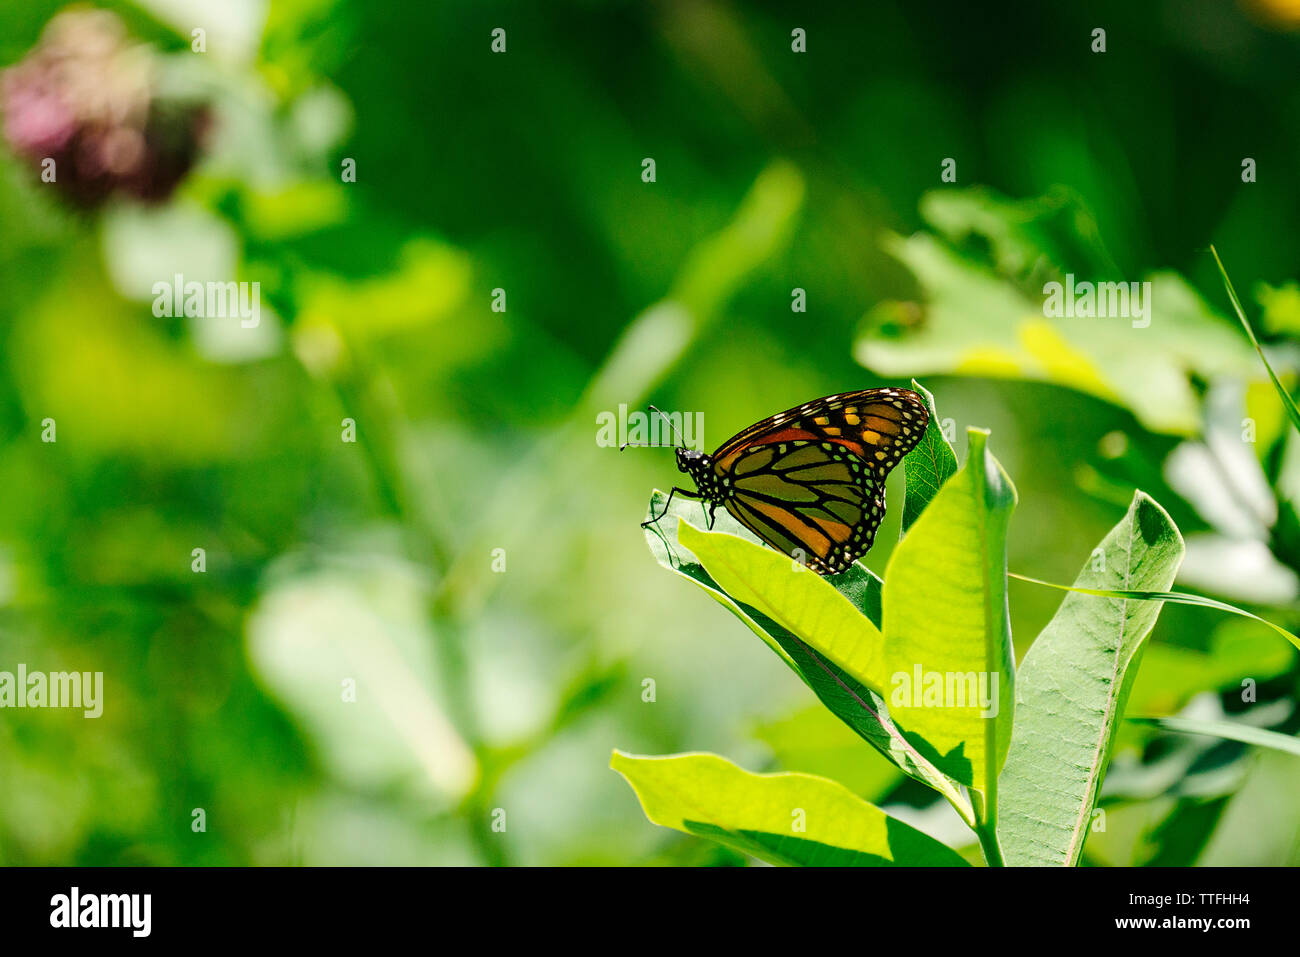 Closeup view of a Monarch Butterfly on a milkweed leaf - Stock Image